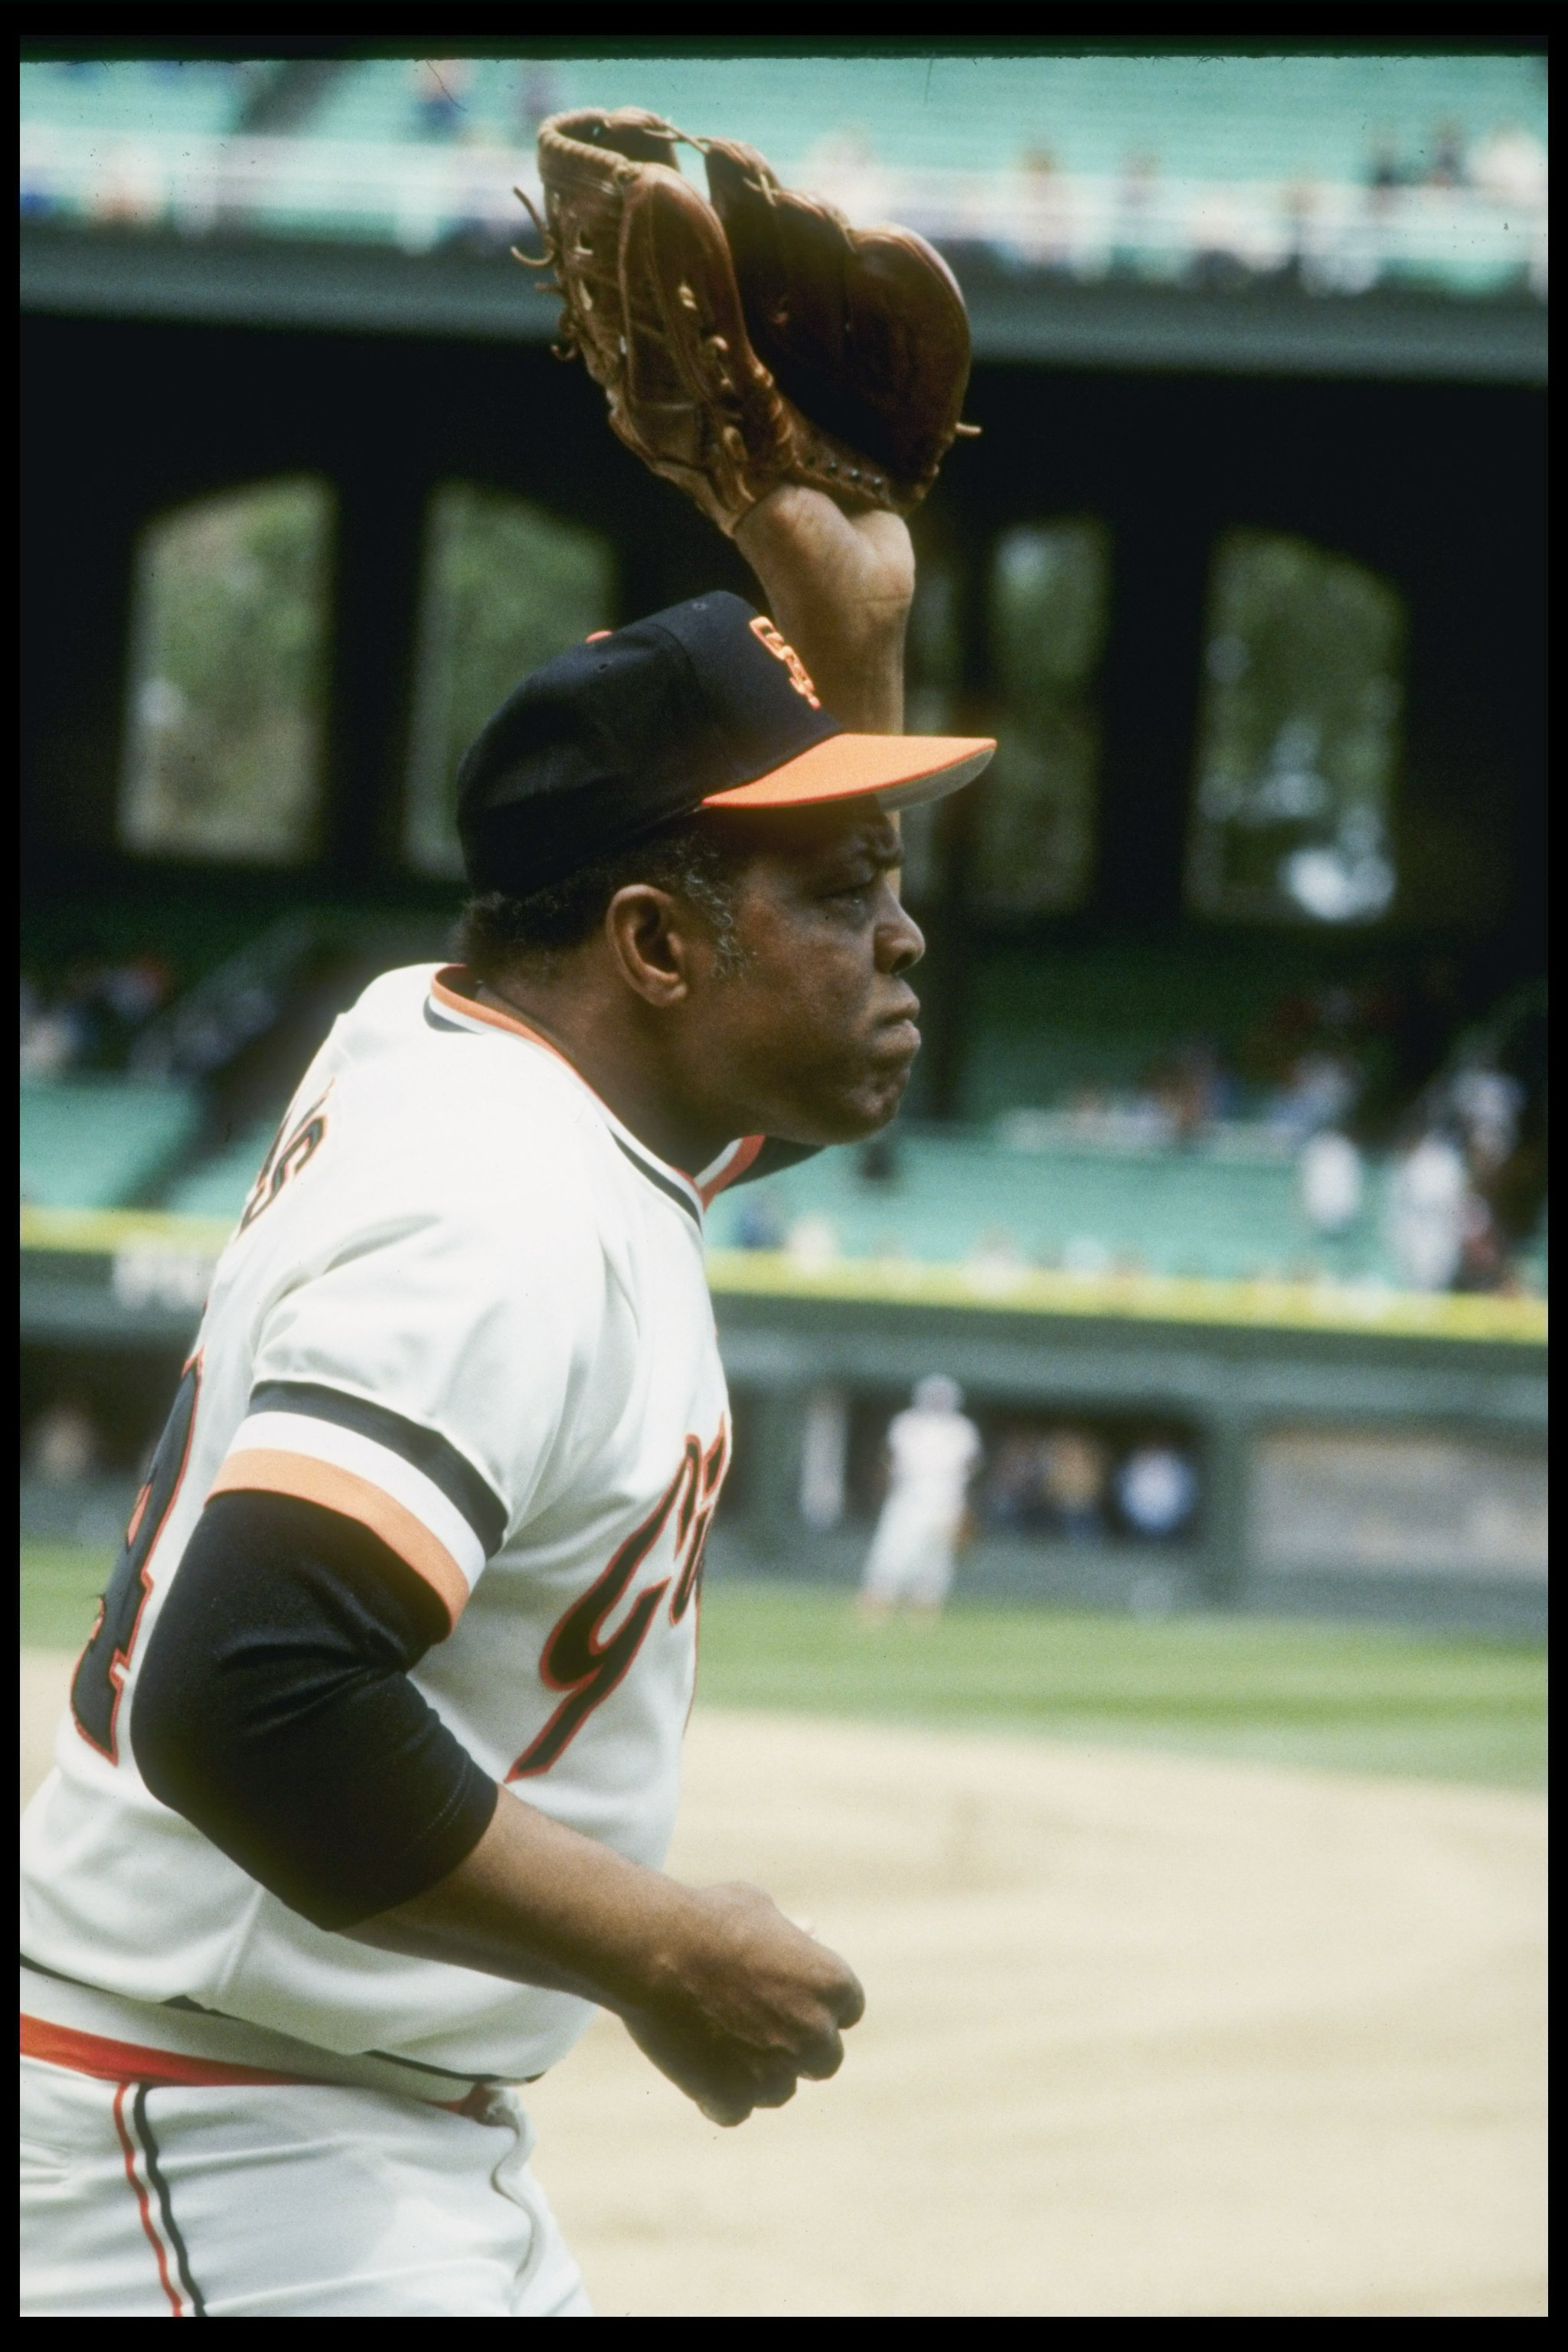 Jul 1983:  Former San Francisco Giants player Willie Mays attends the All-Star Game at Comiskey Park in Chicago, Illinois. Mandatory Credit: Allsport  /Allsport